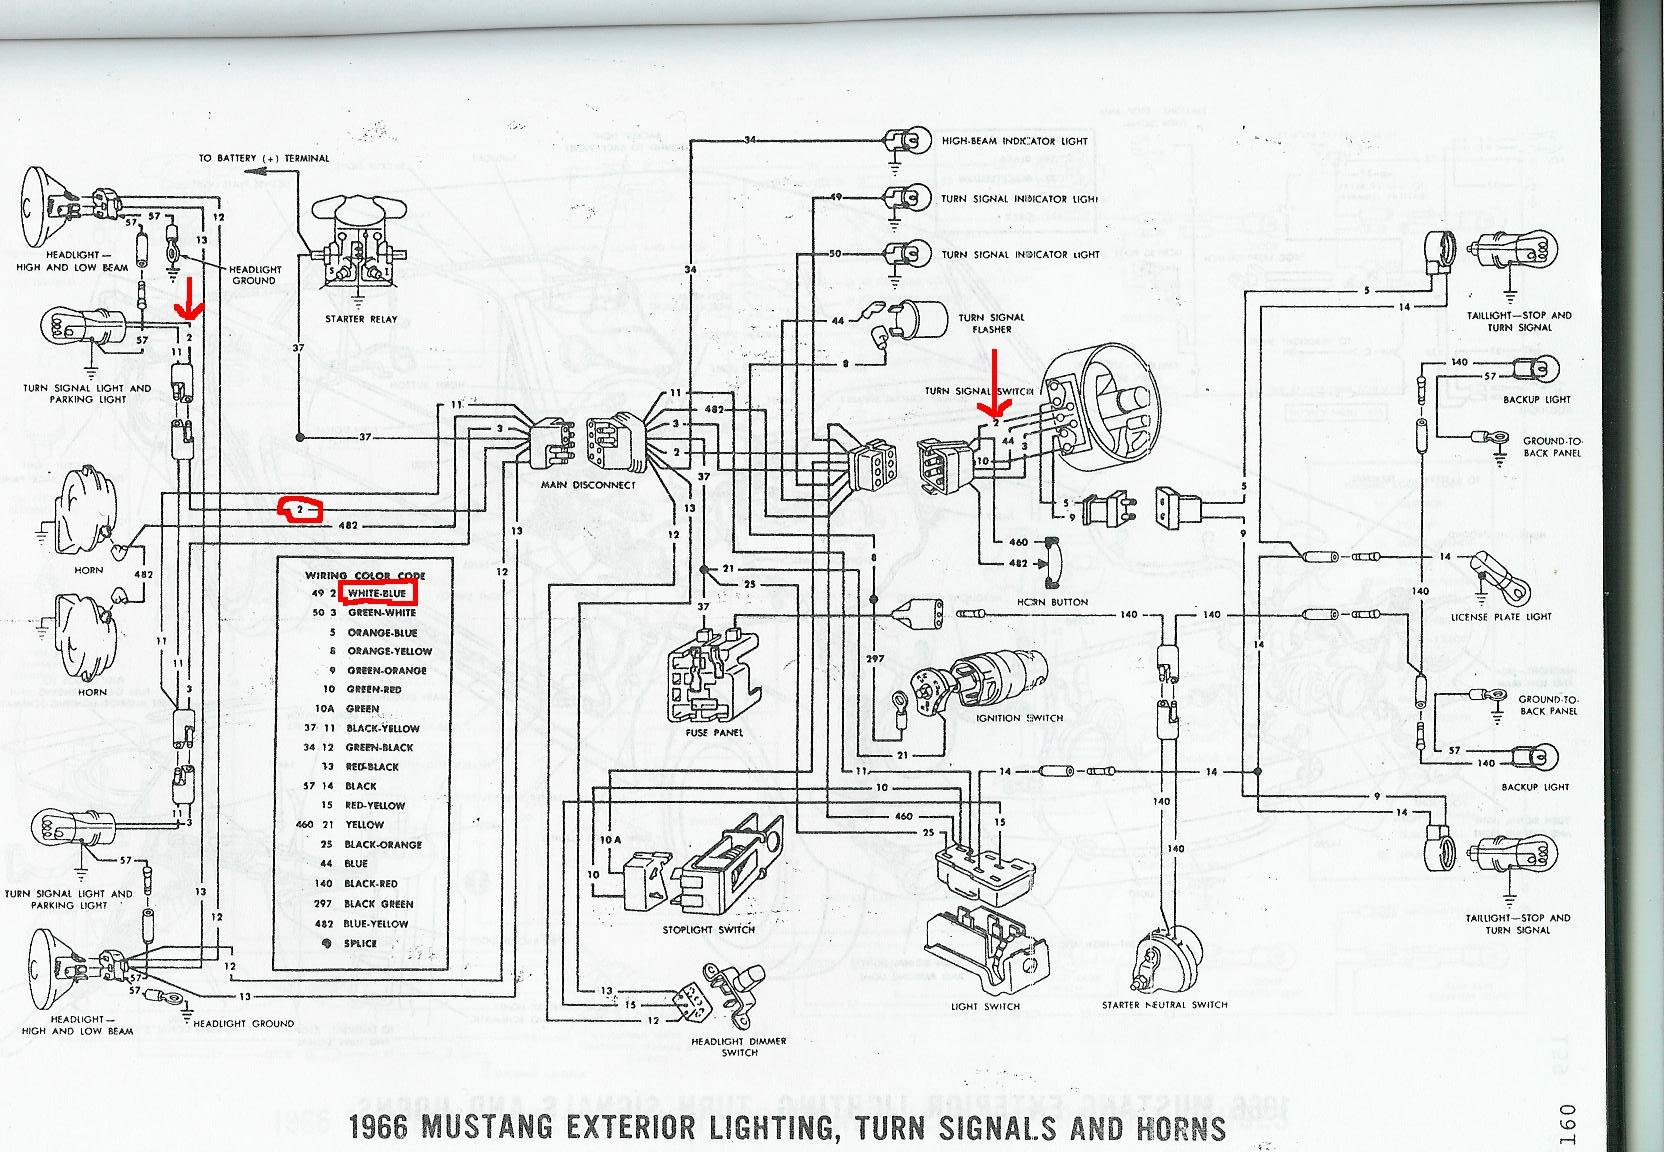 1968 Ford Mustang Turn Signal Wiring Diagram : 44 Wiring